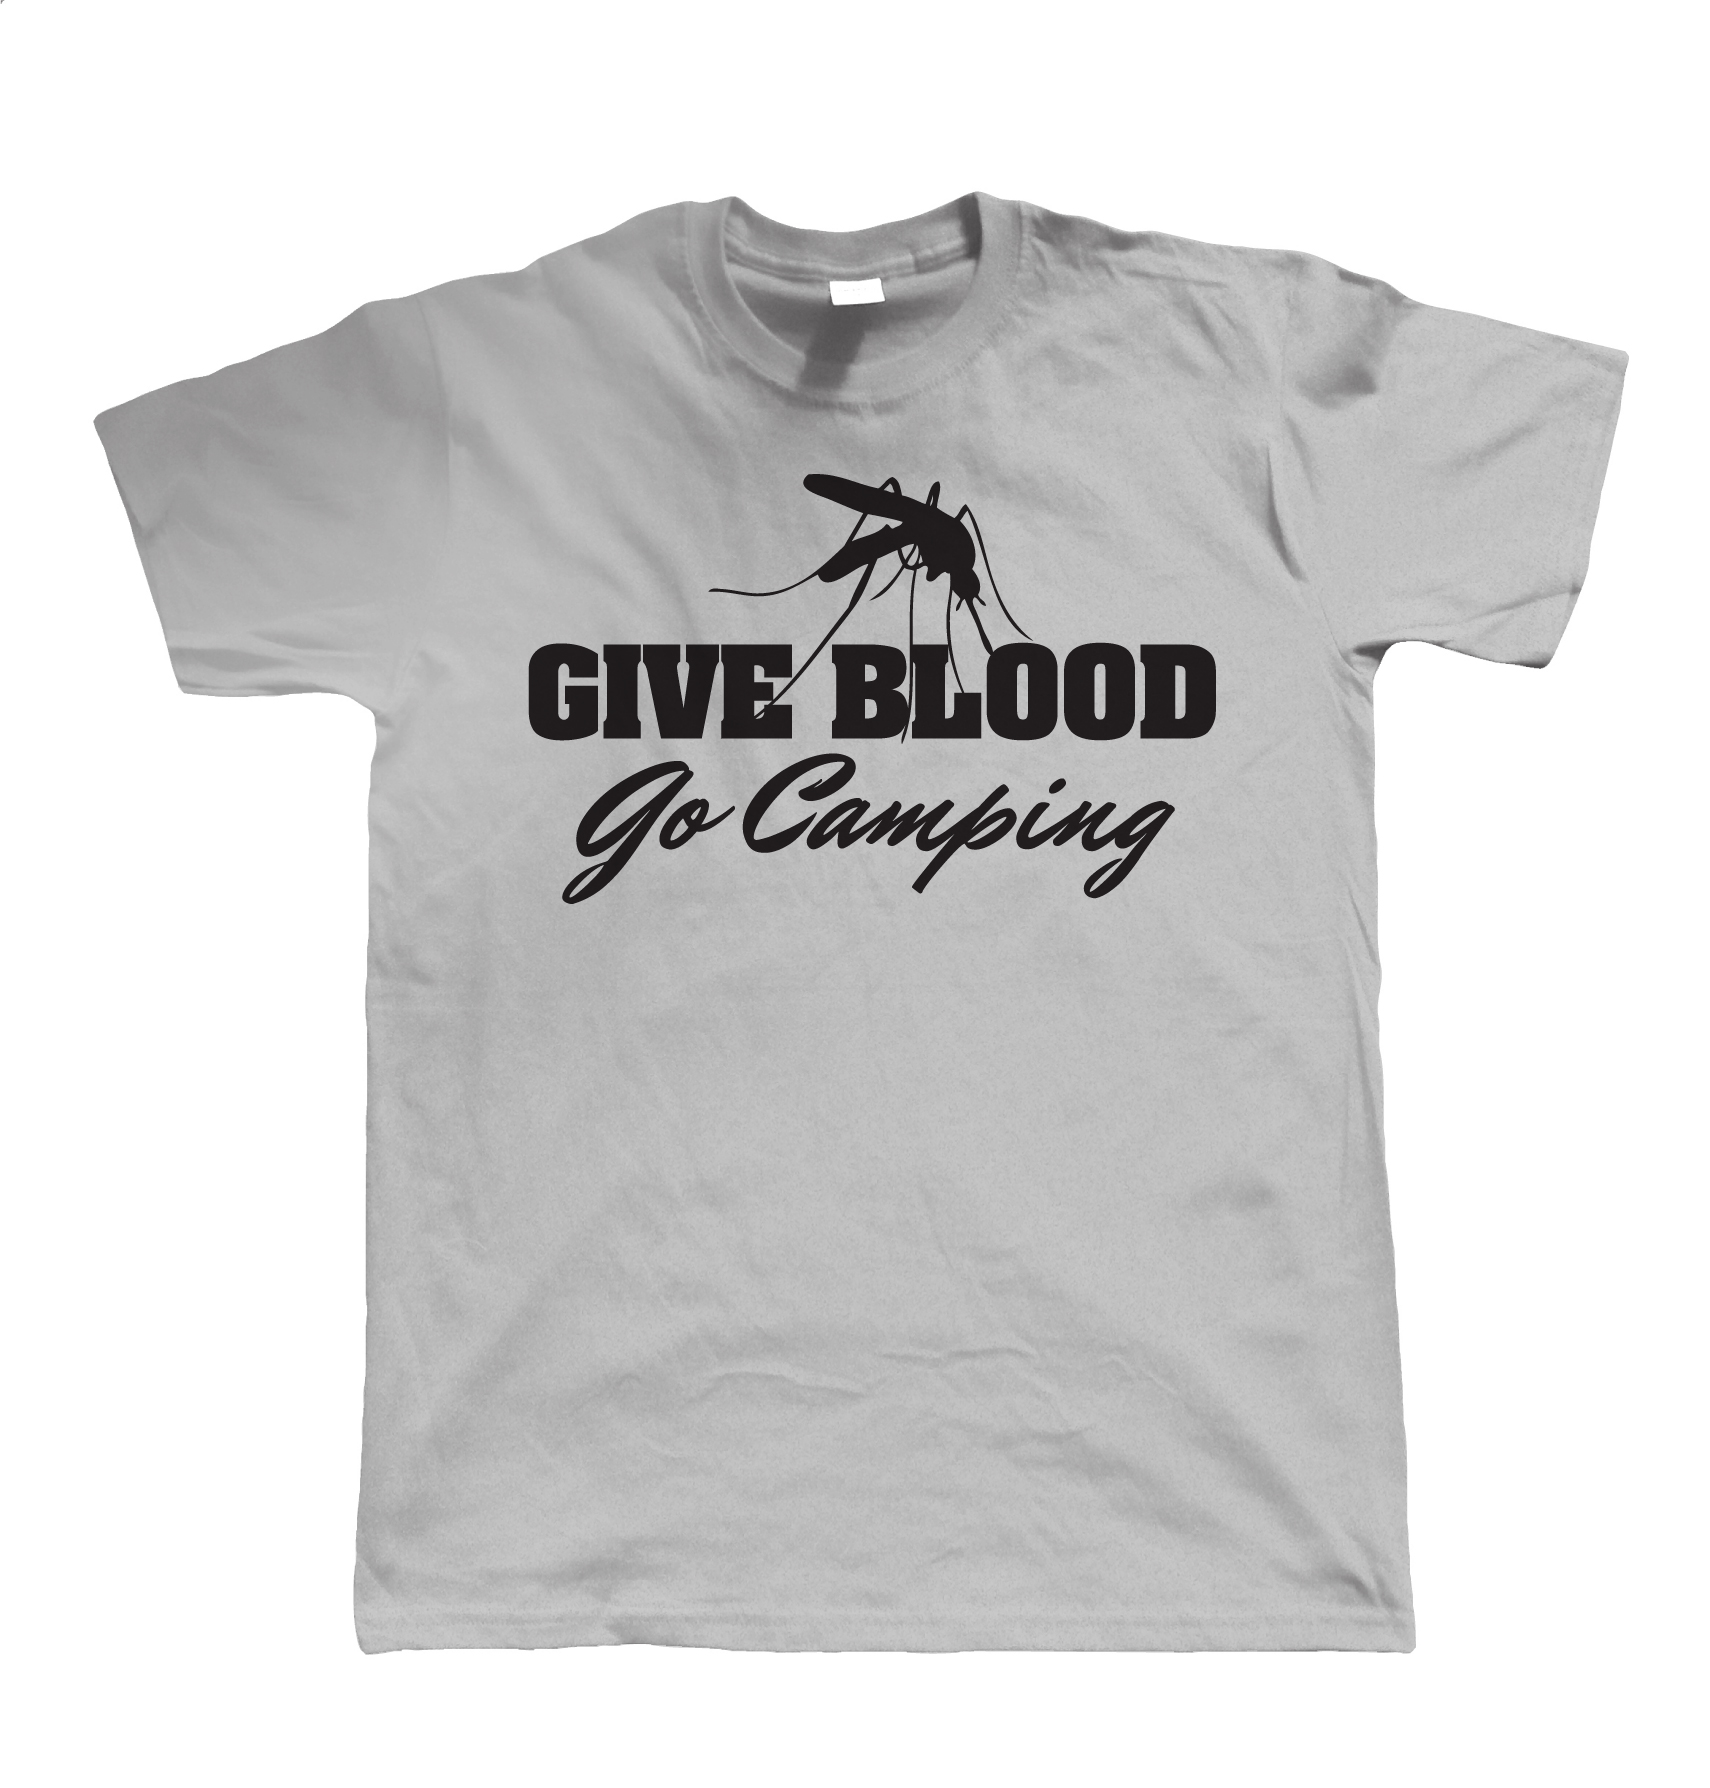 Give Blood Go CampingED Mens Funny T Shirt - Campervan Wild campingED Gift for Him